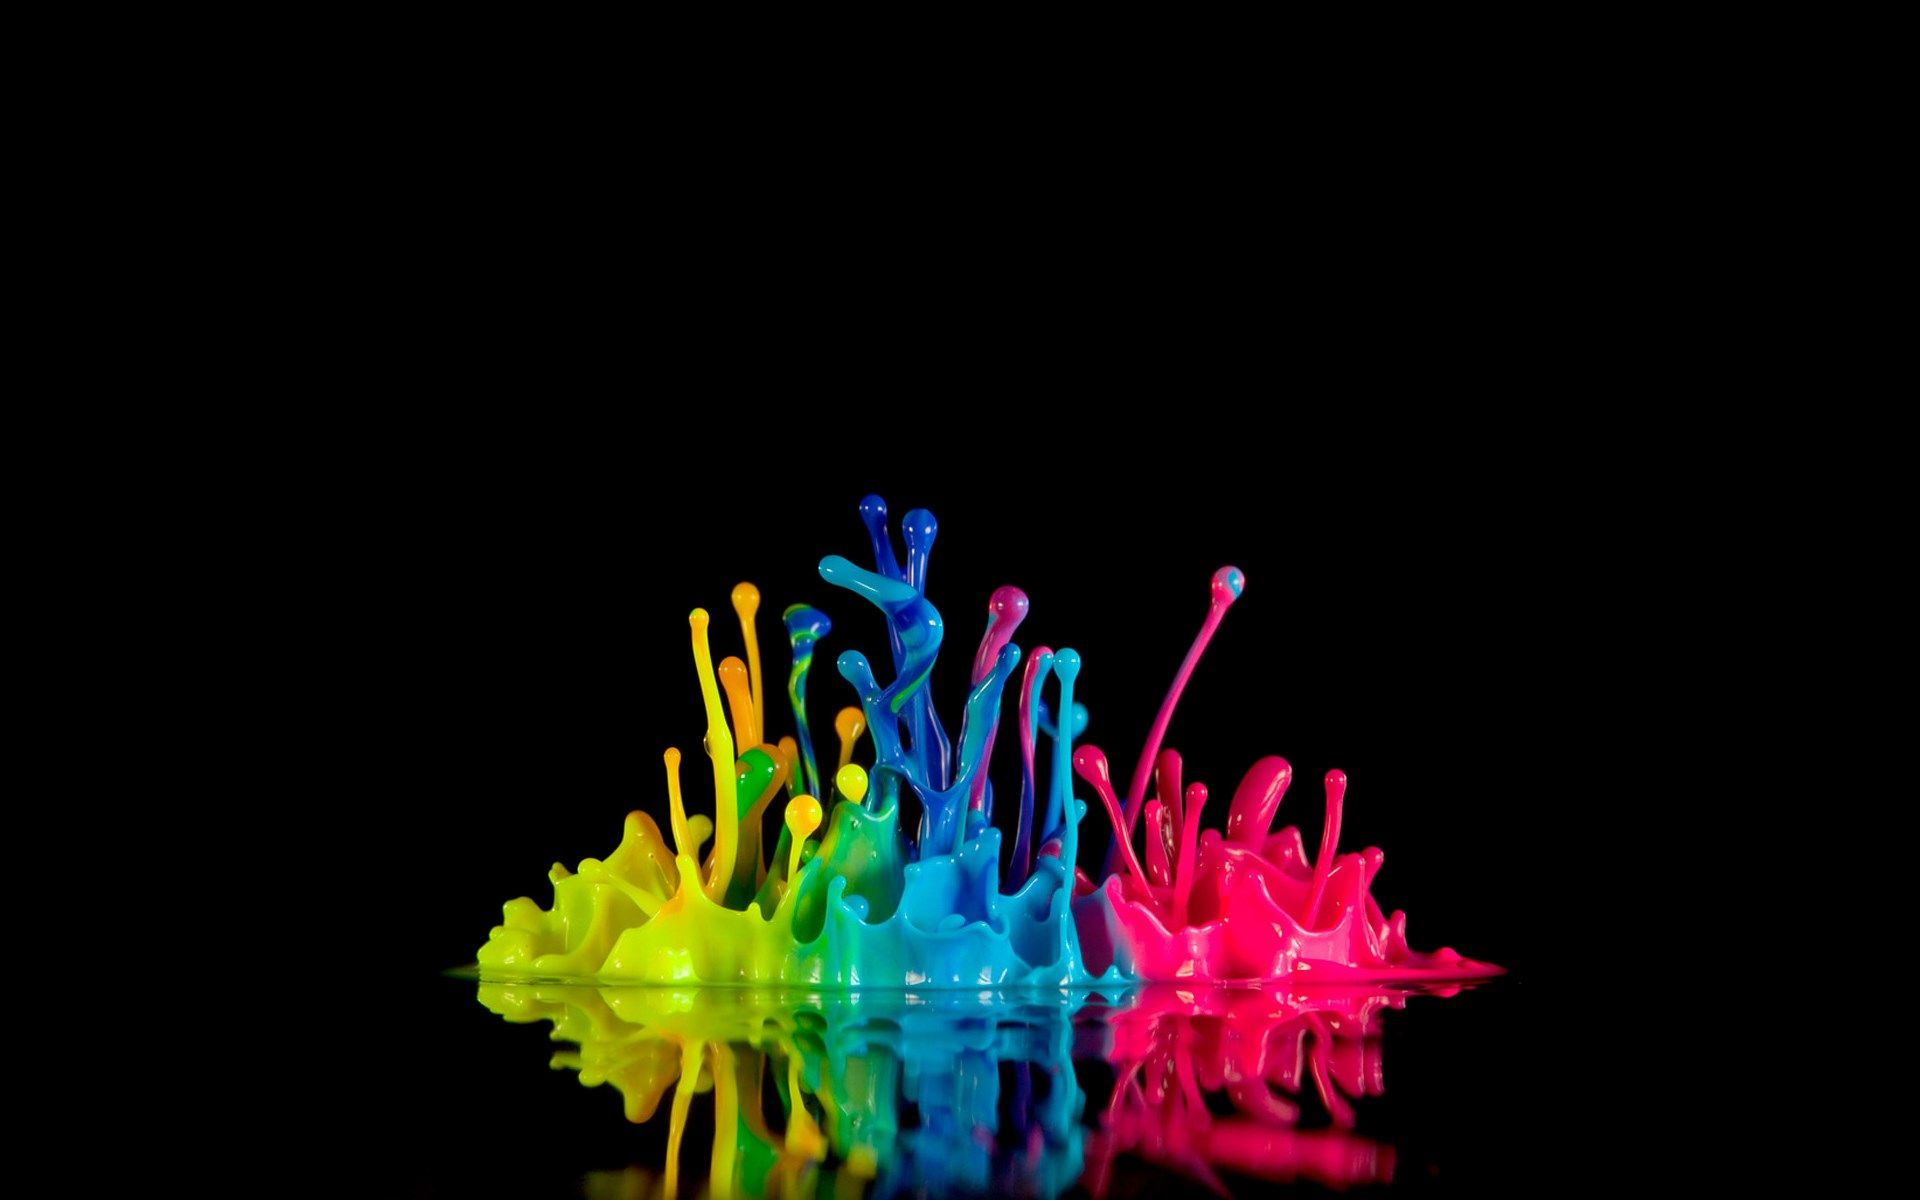 neon color picture: images, walls, pics - neon color category